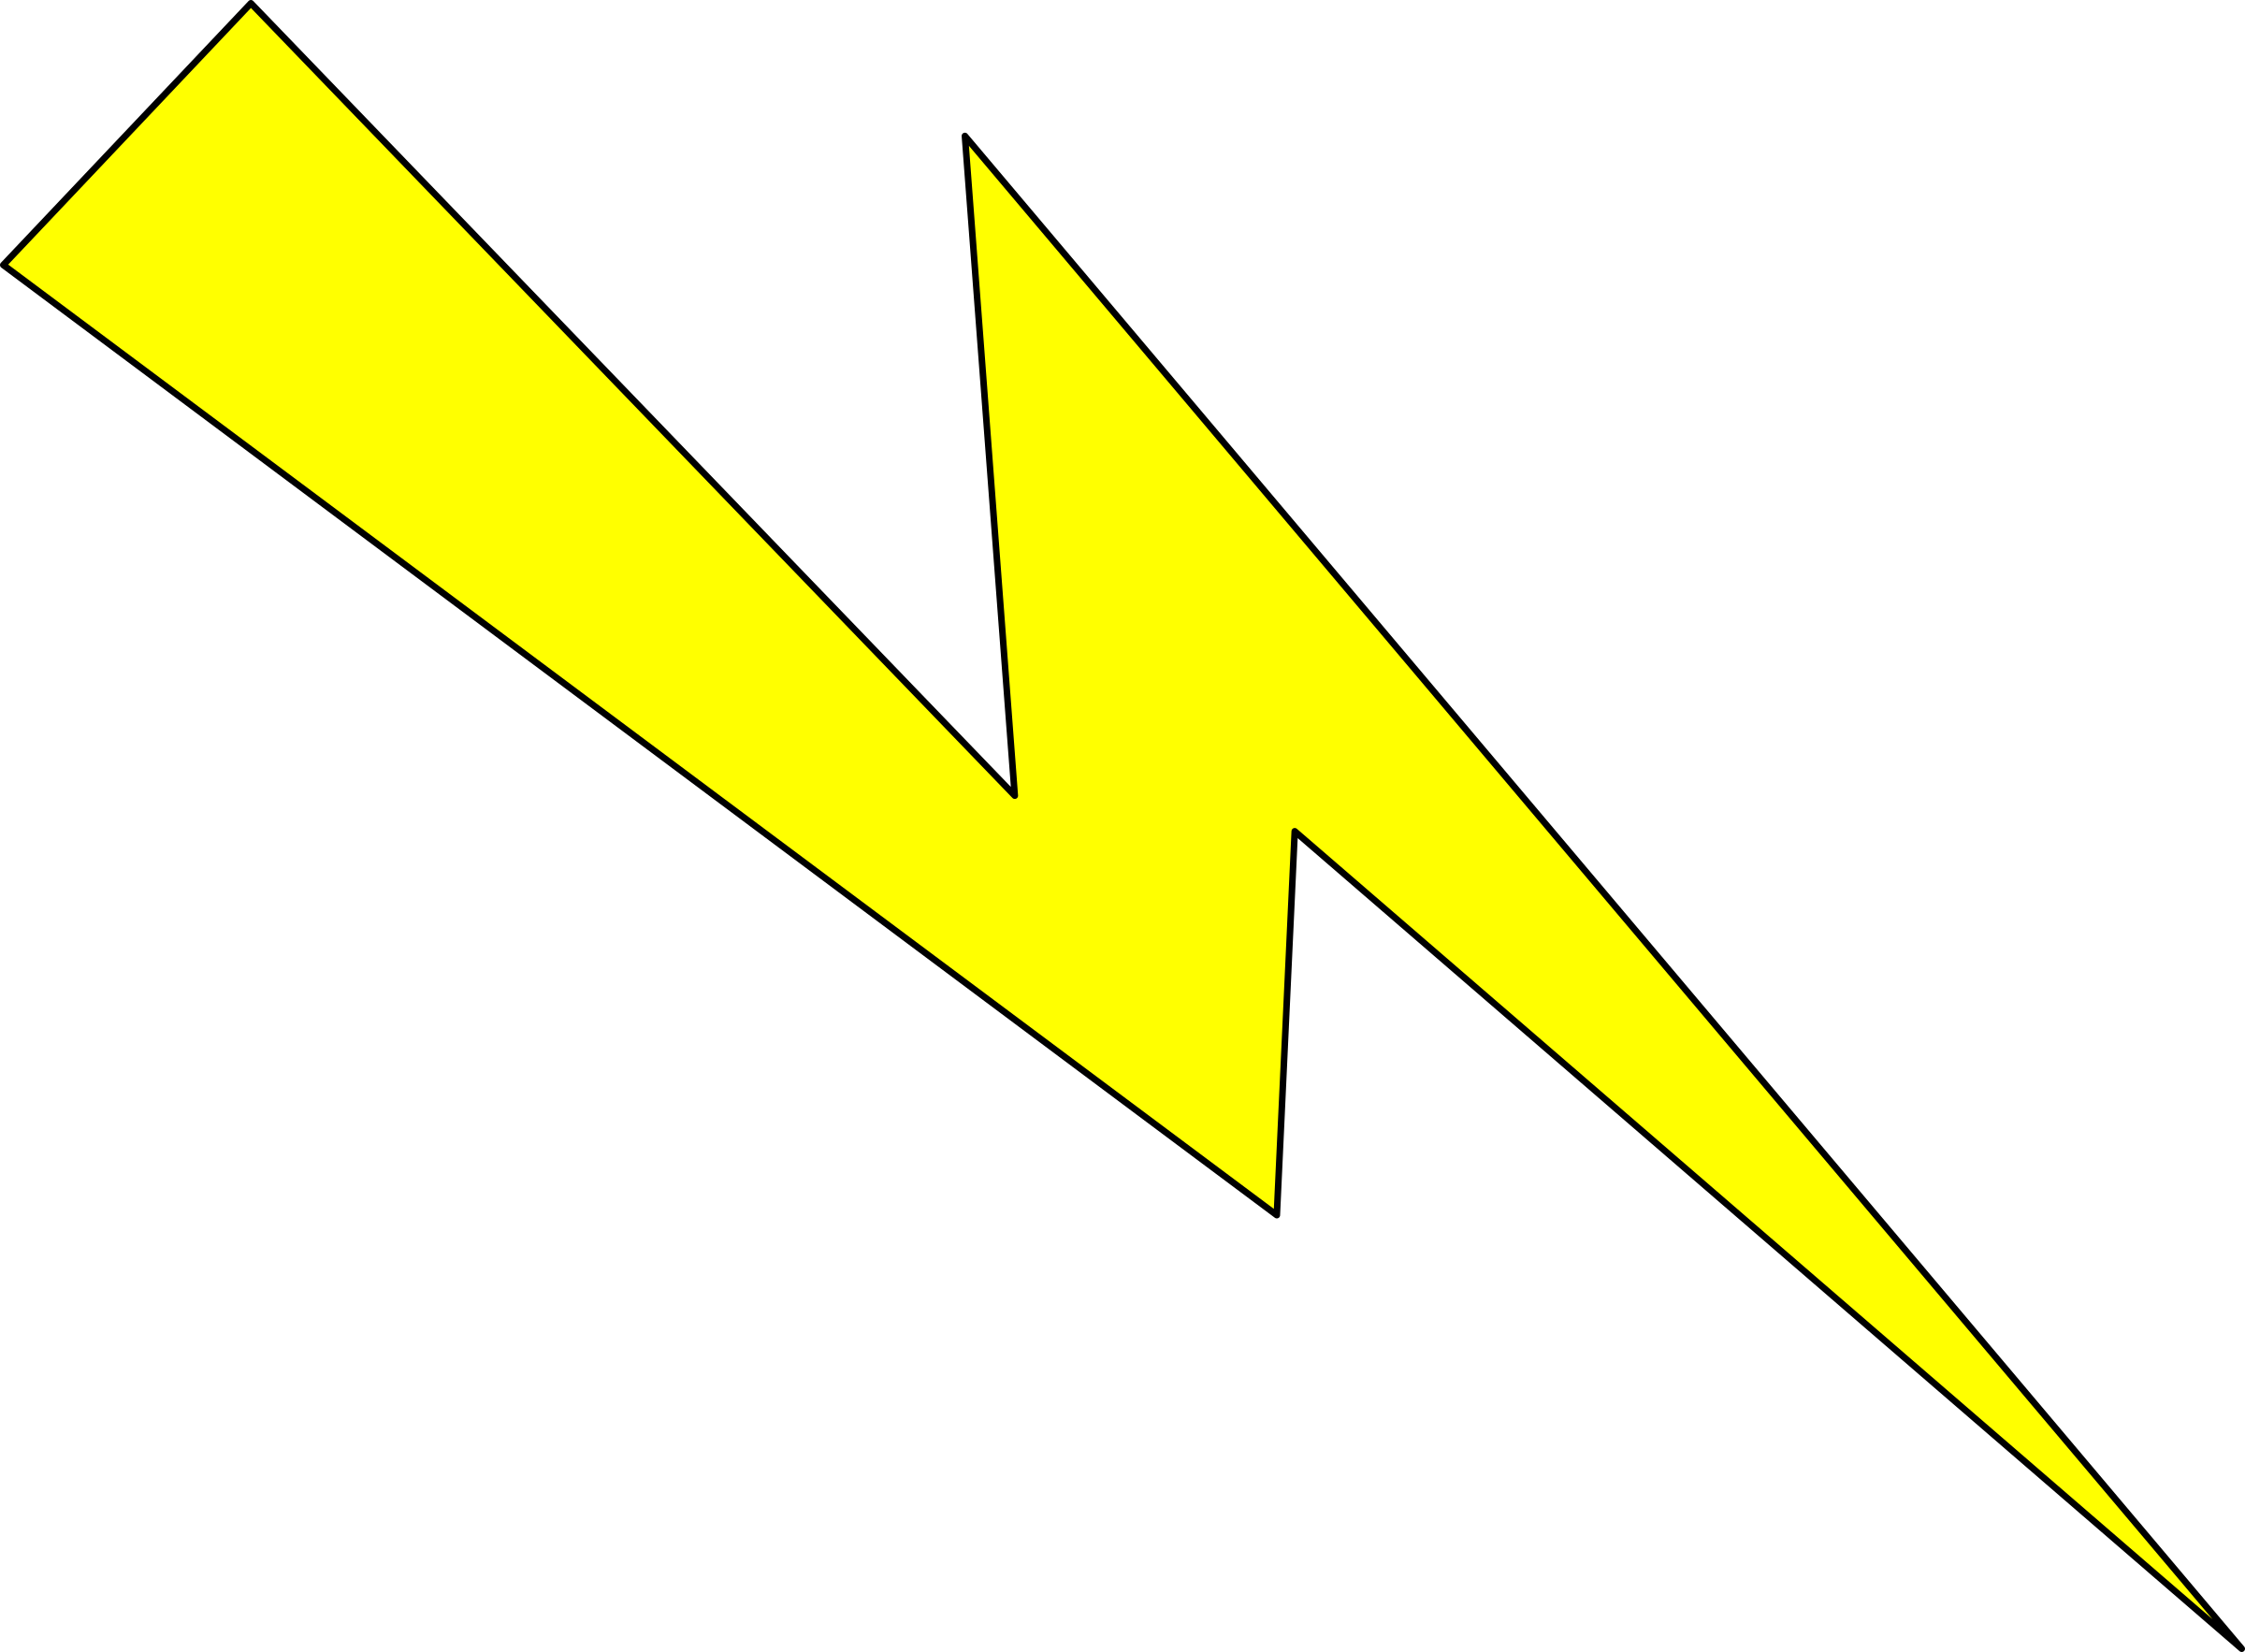 Lightening clipart yellow With Yellow Lightning with Wallpaper